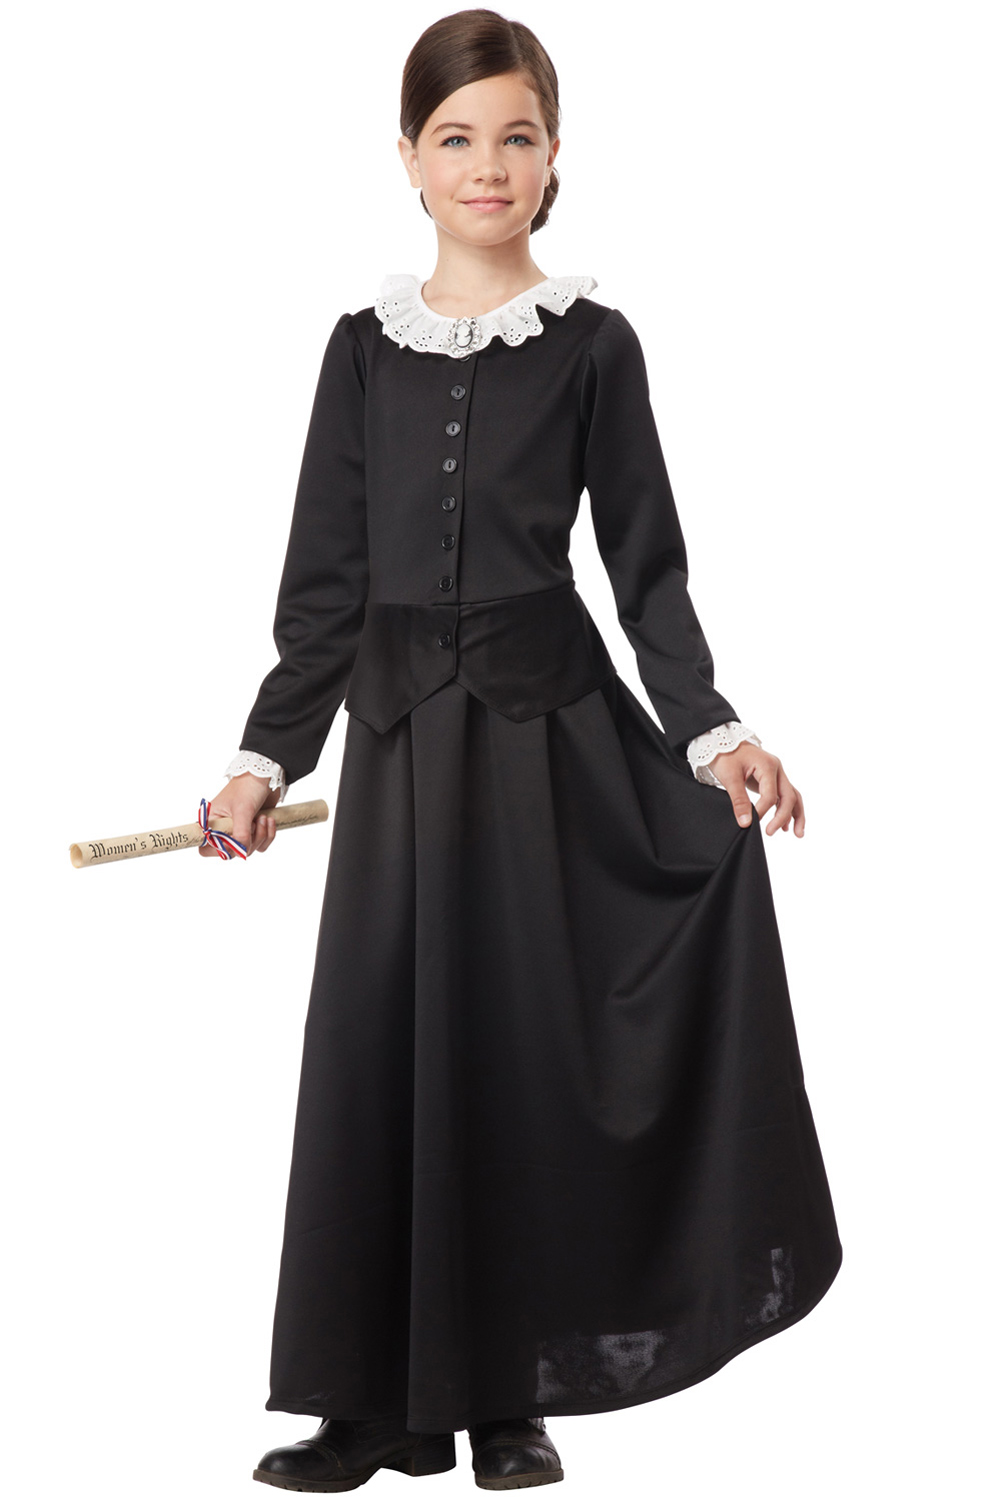 susan b anthony harriet tubman child costume. Black Bedroom Furniture Sets. Home Design Ideas